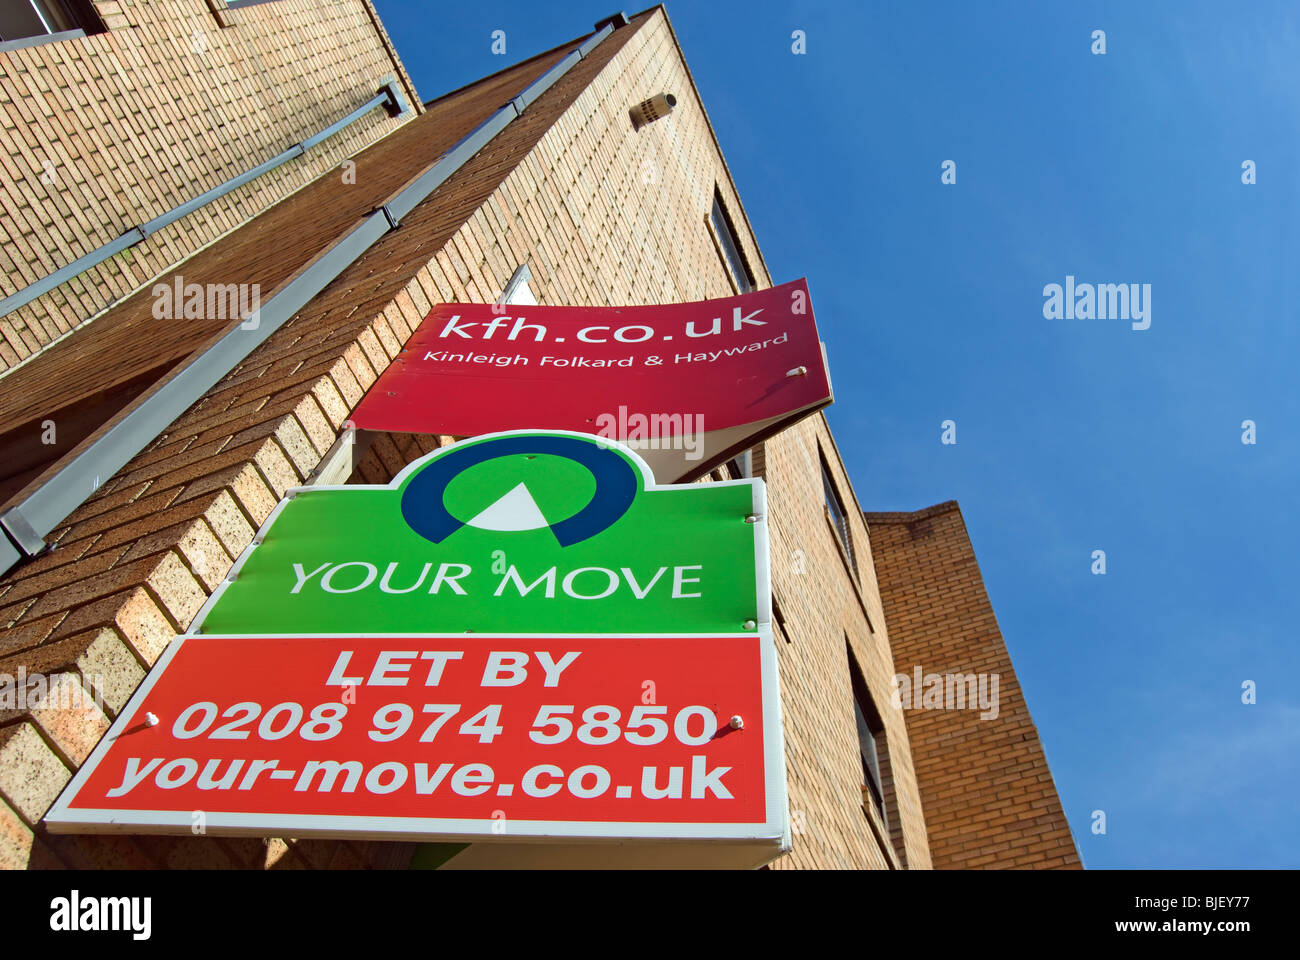 lettings boards in kingston upon thames, surrey, england - Stock Image